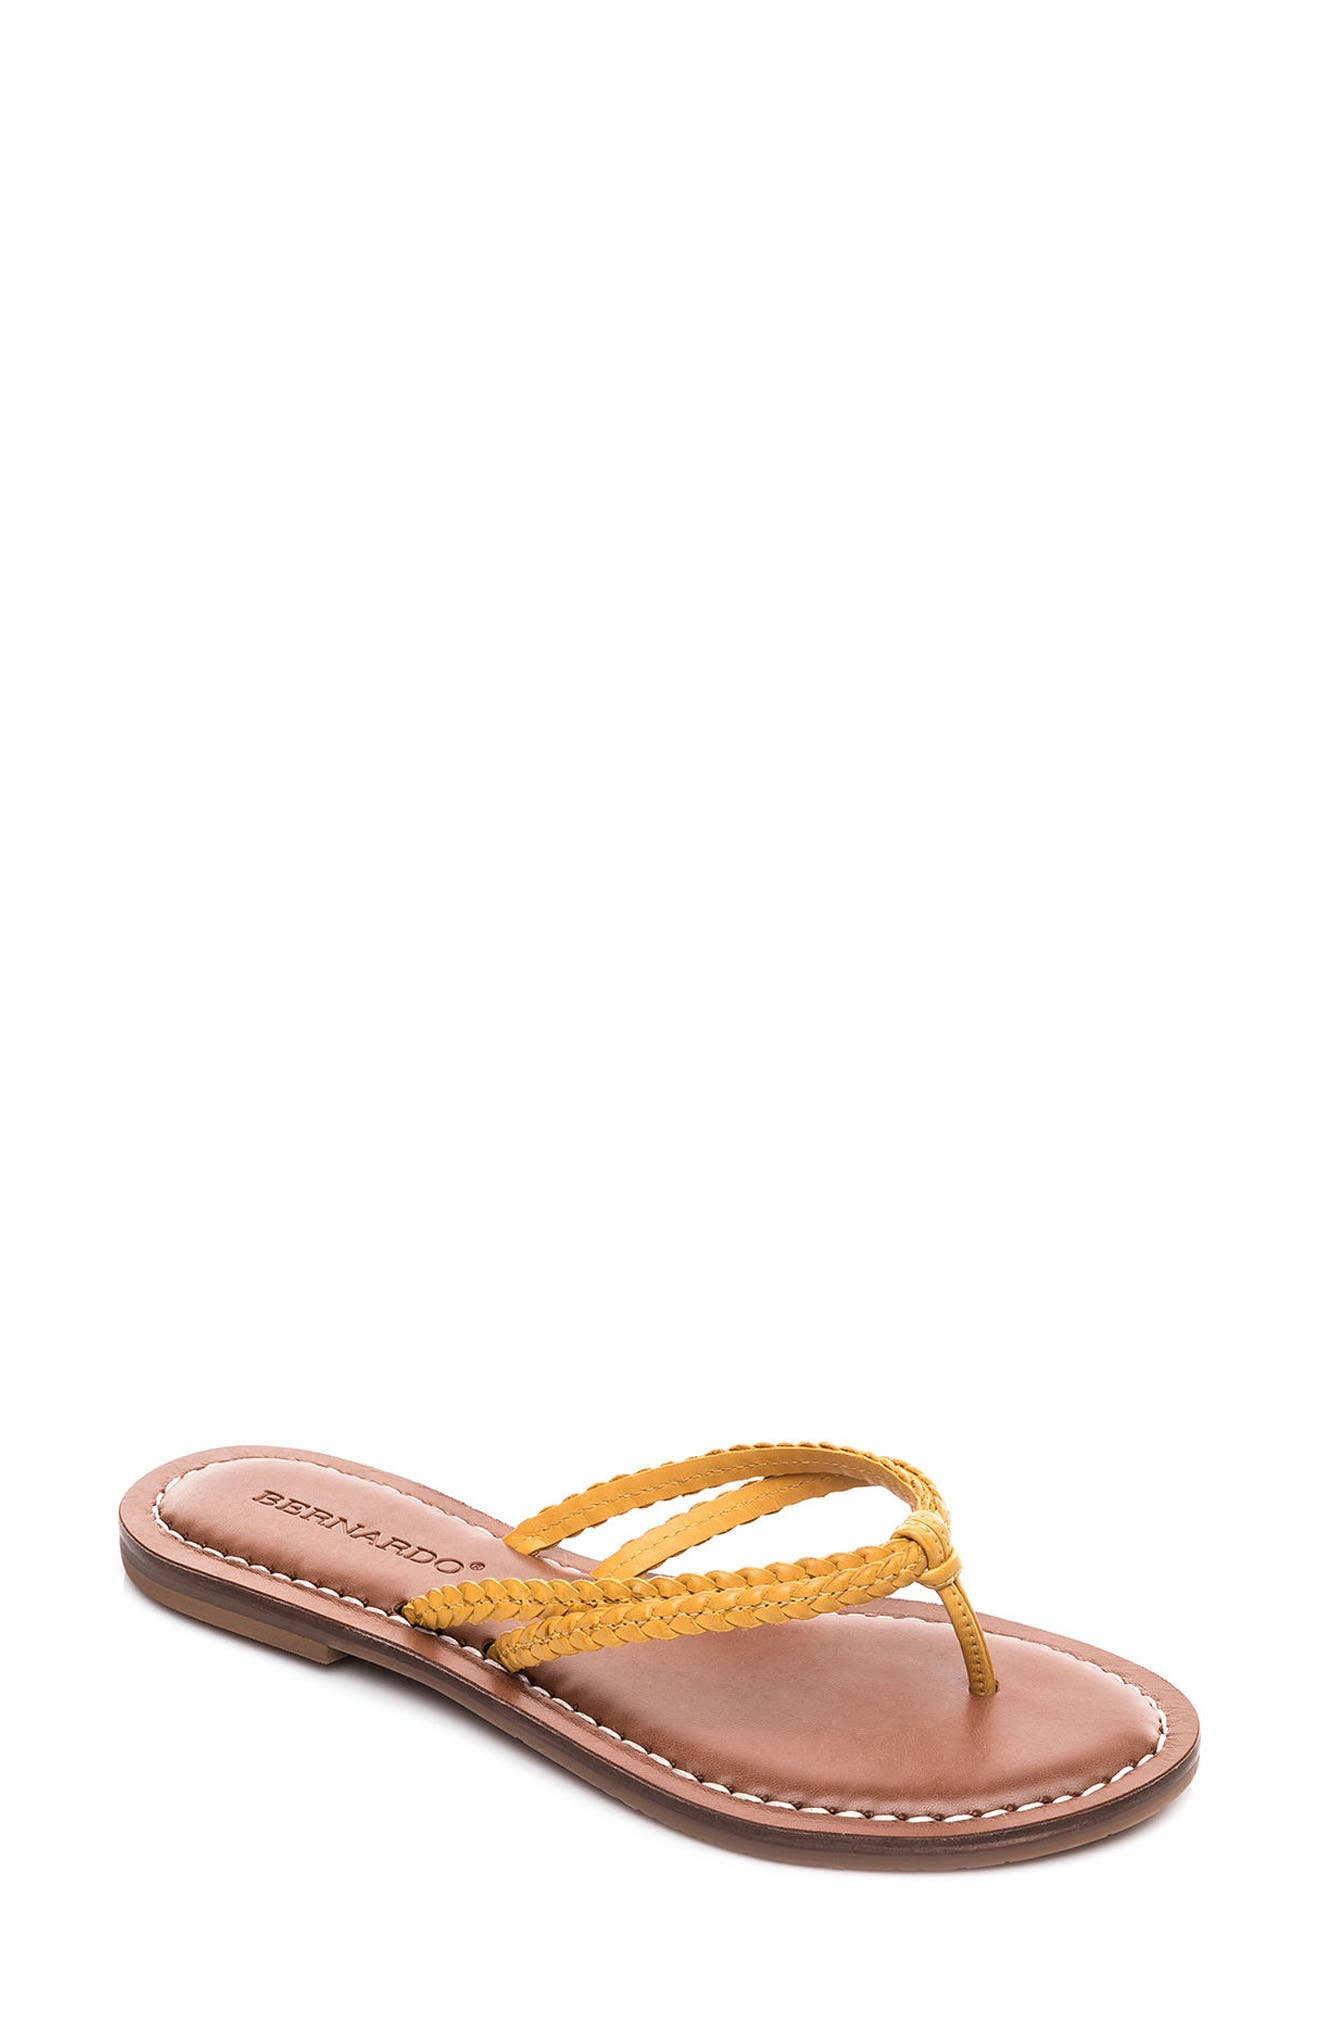 Bernardo Greta Braided Strap Sandal,                             Main thumbnail 6, color,